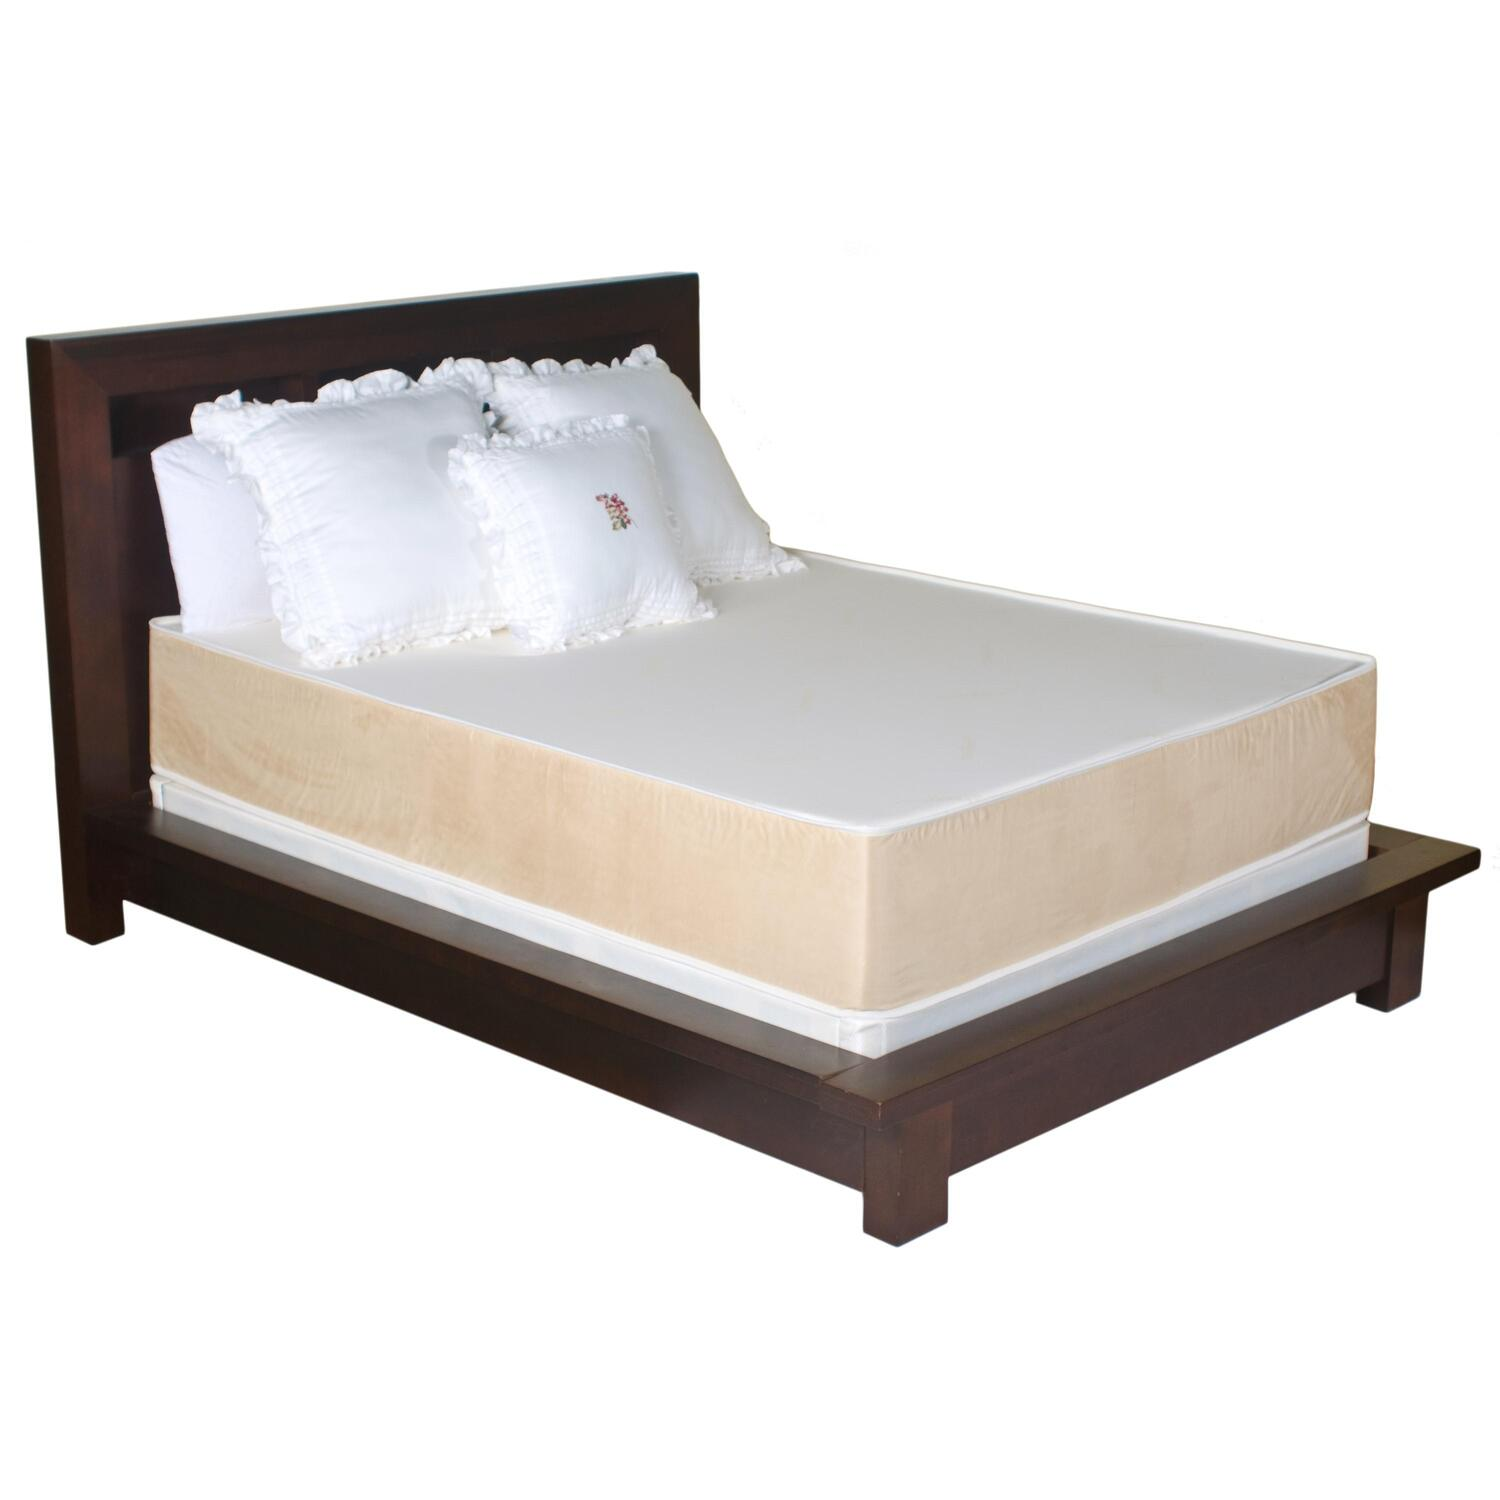 Jeffco 13 In Memory Foam Mattress With Coolmax Ventiliation Technology By Oj Commerce